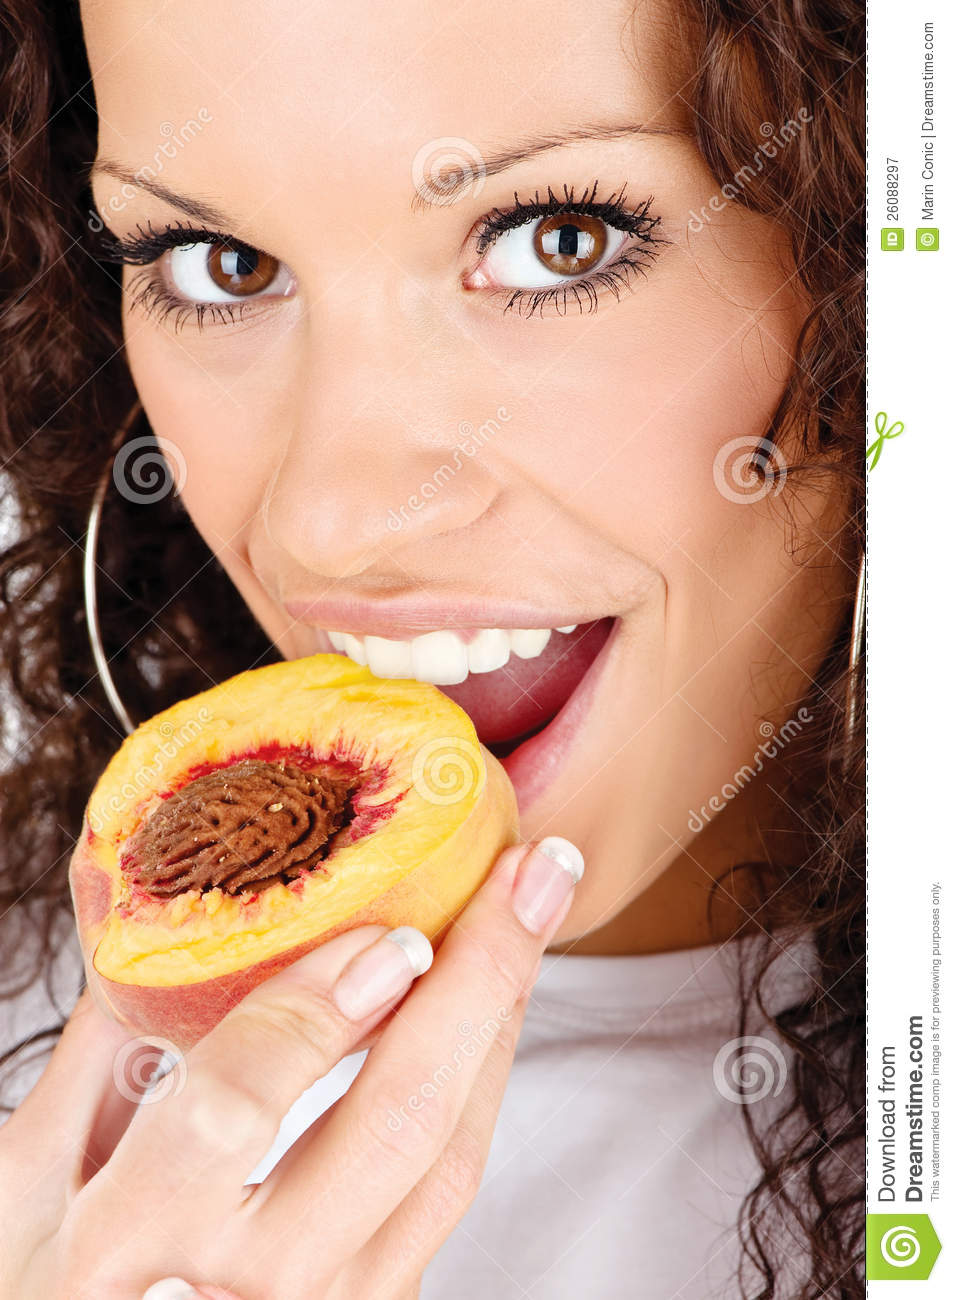 More similar stock images of ` Woman eating peach `